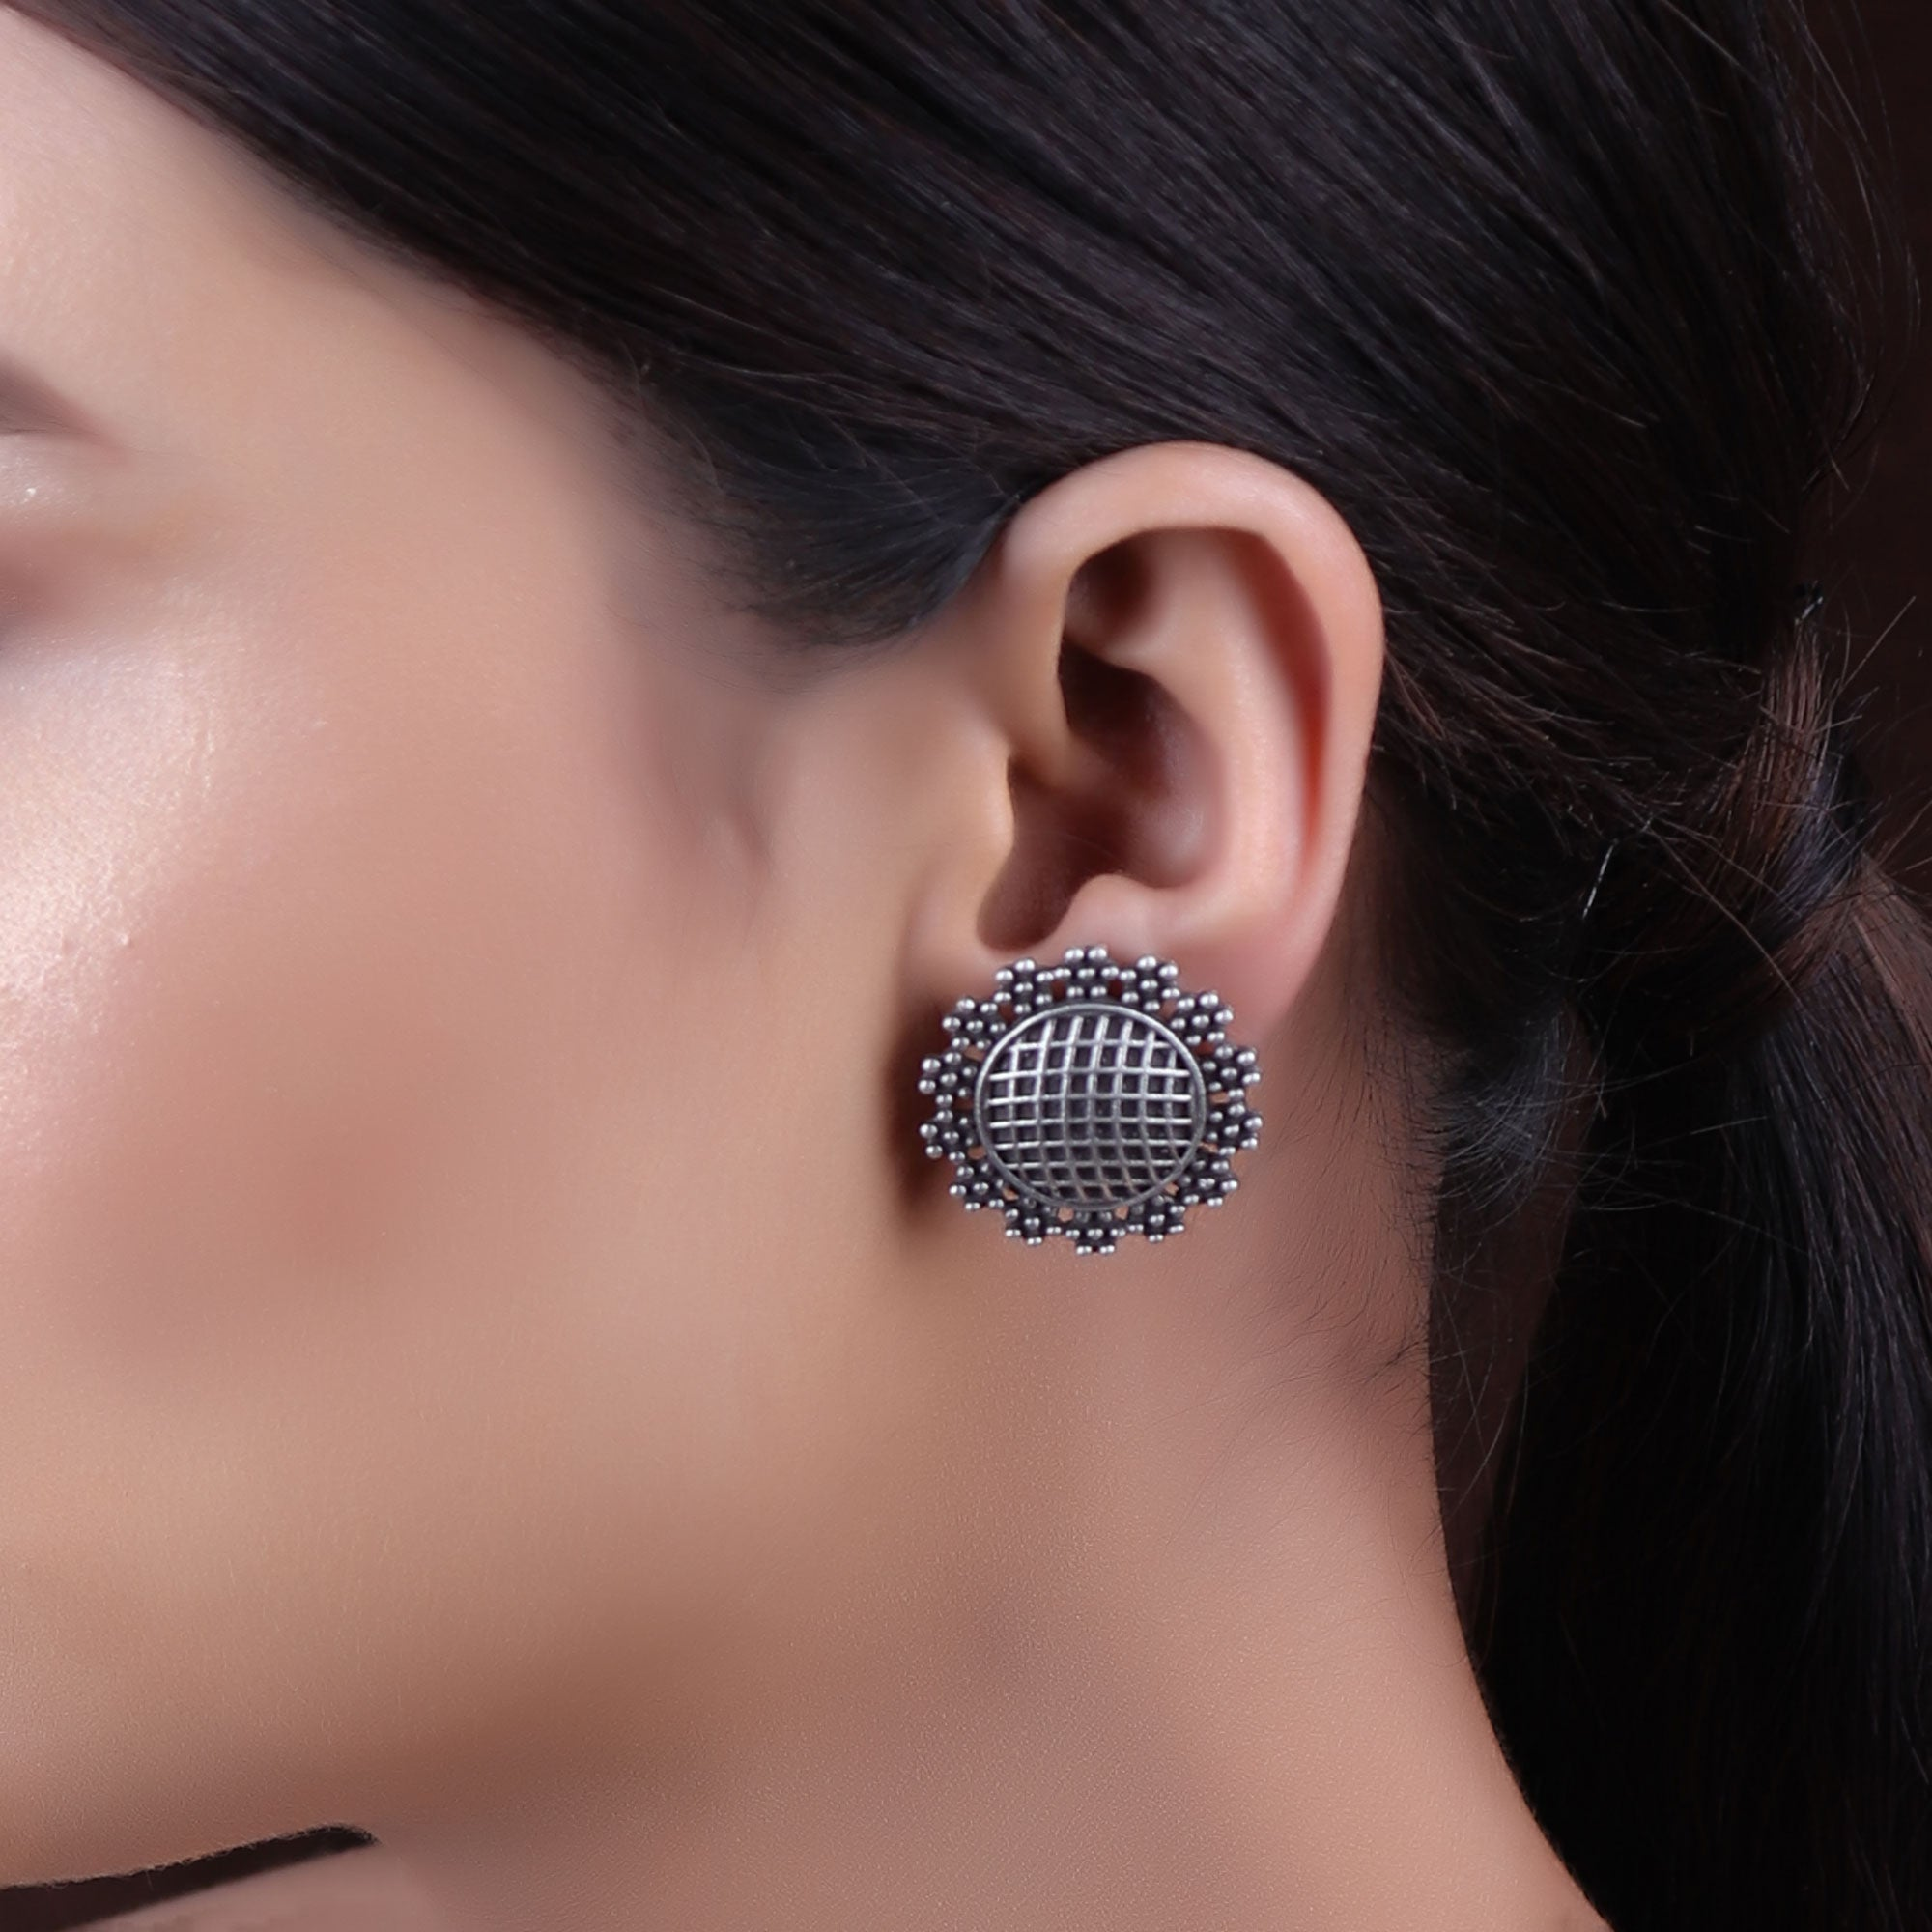 Earrings,The Mesh - Silver Look Alike Stud - Cippele Multi Store